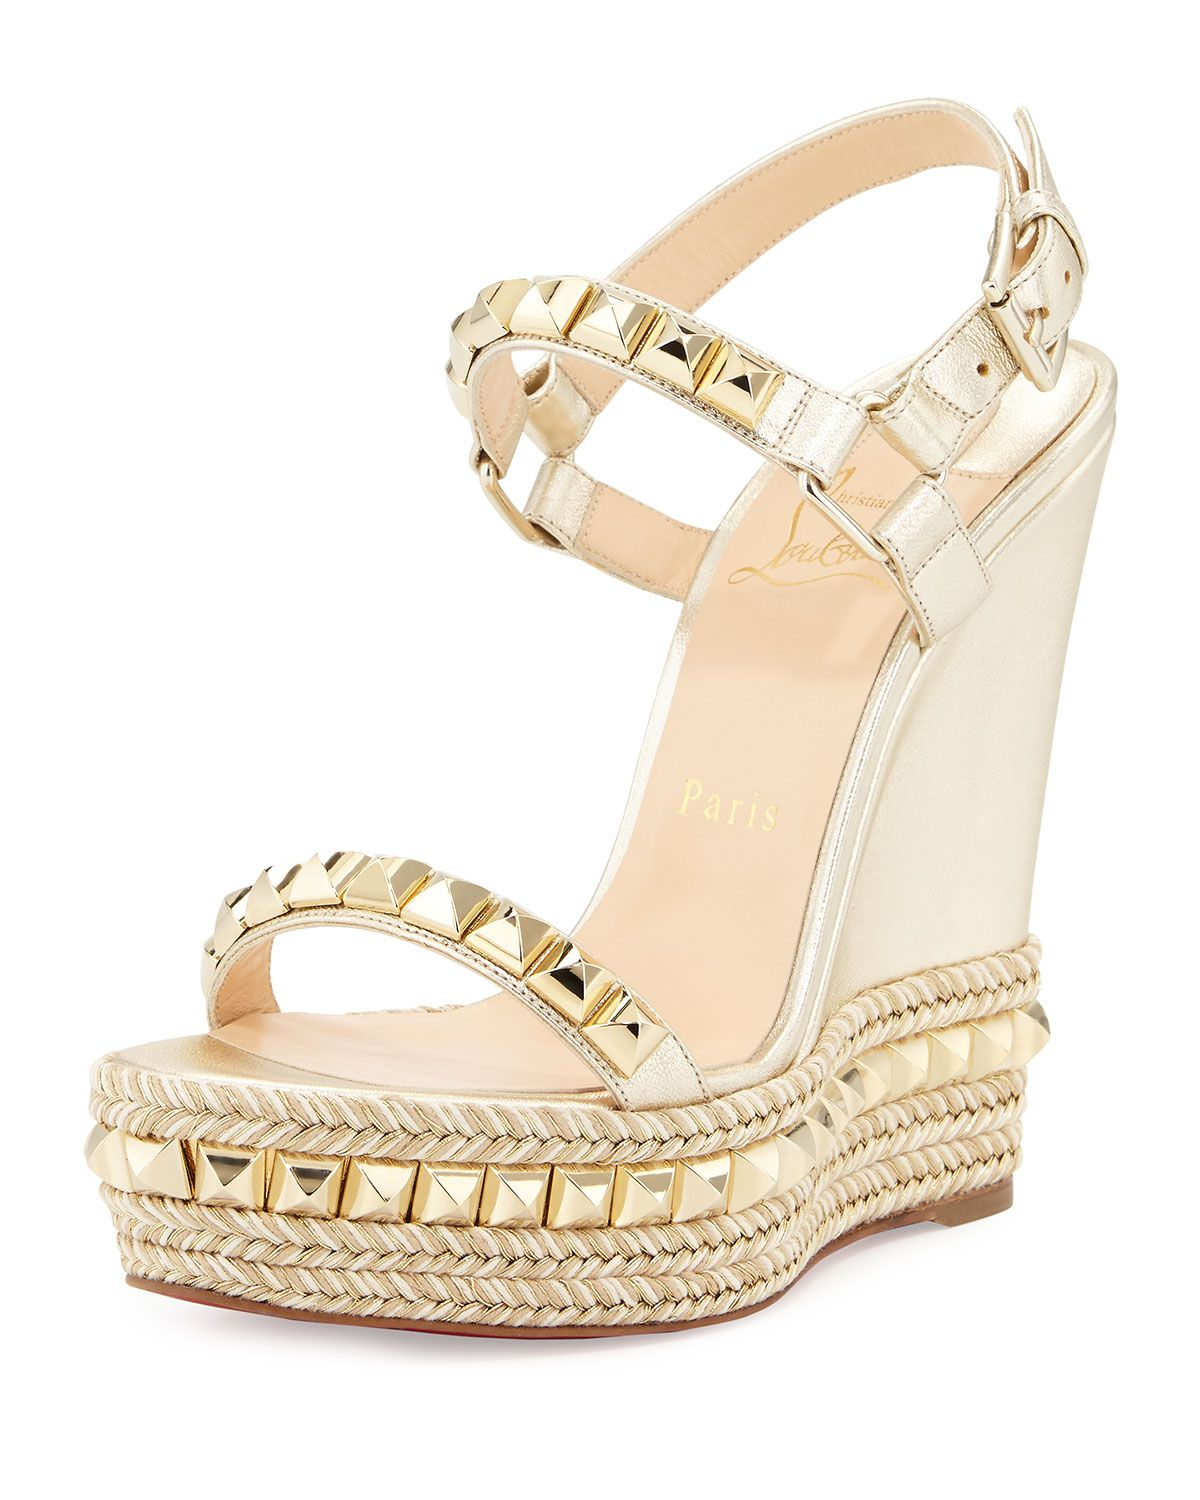 Christian Louboutin Cataclou Studded Leather Wedge Red Sole Sandal,  Sahara/Light Gold